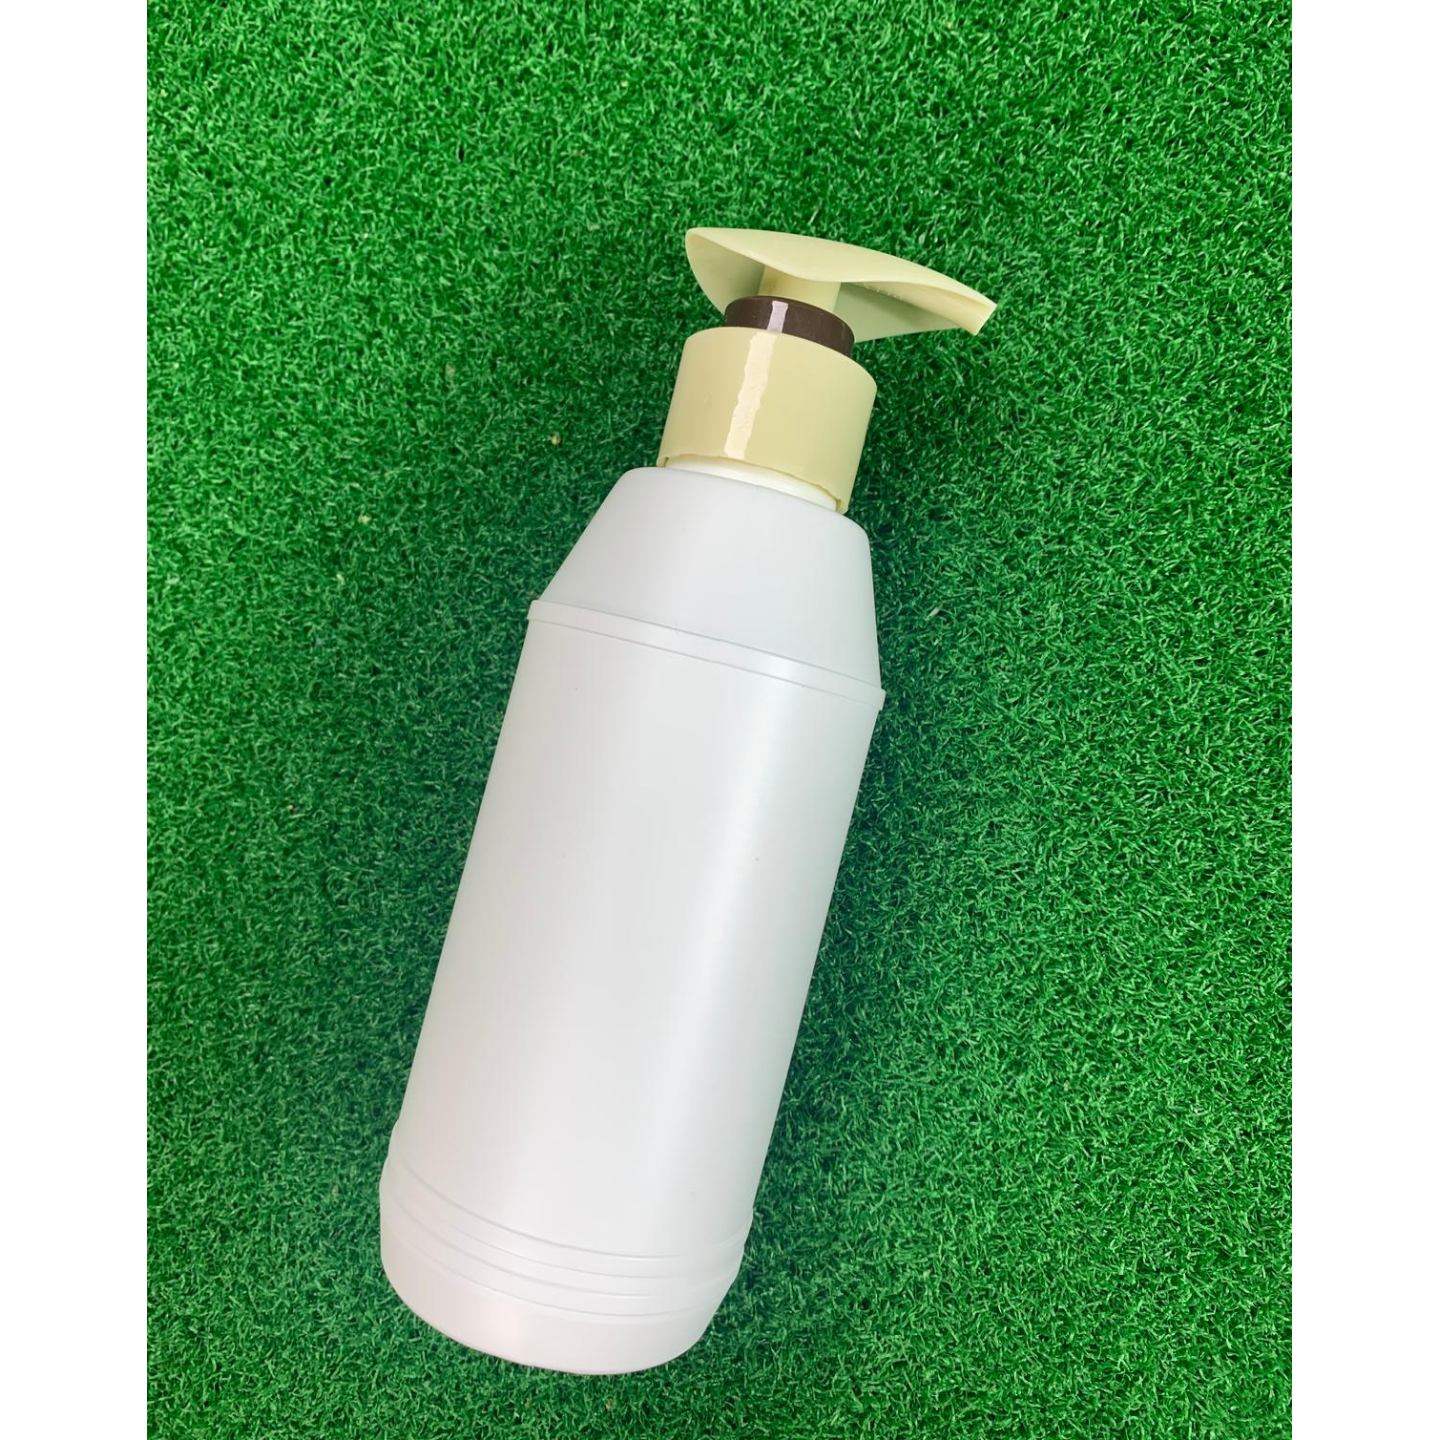 240ml pump bottle